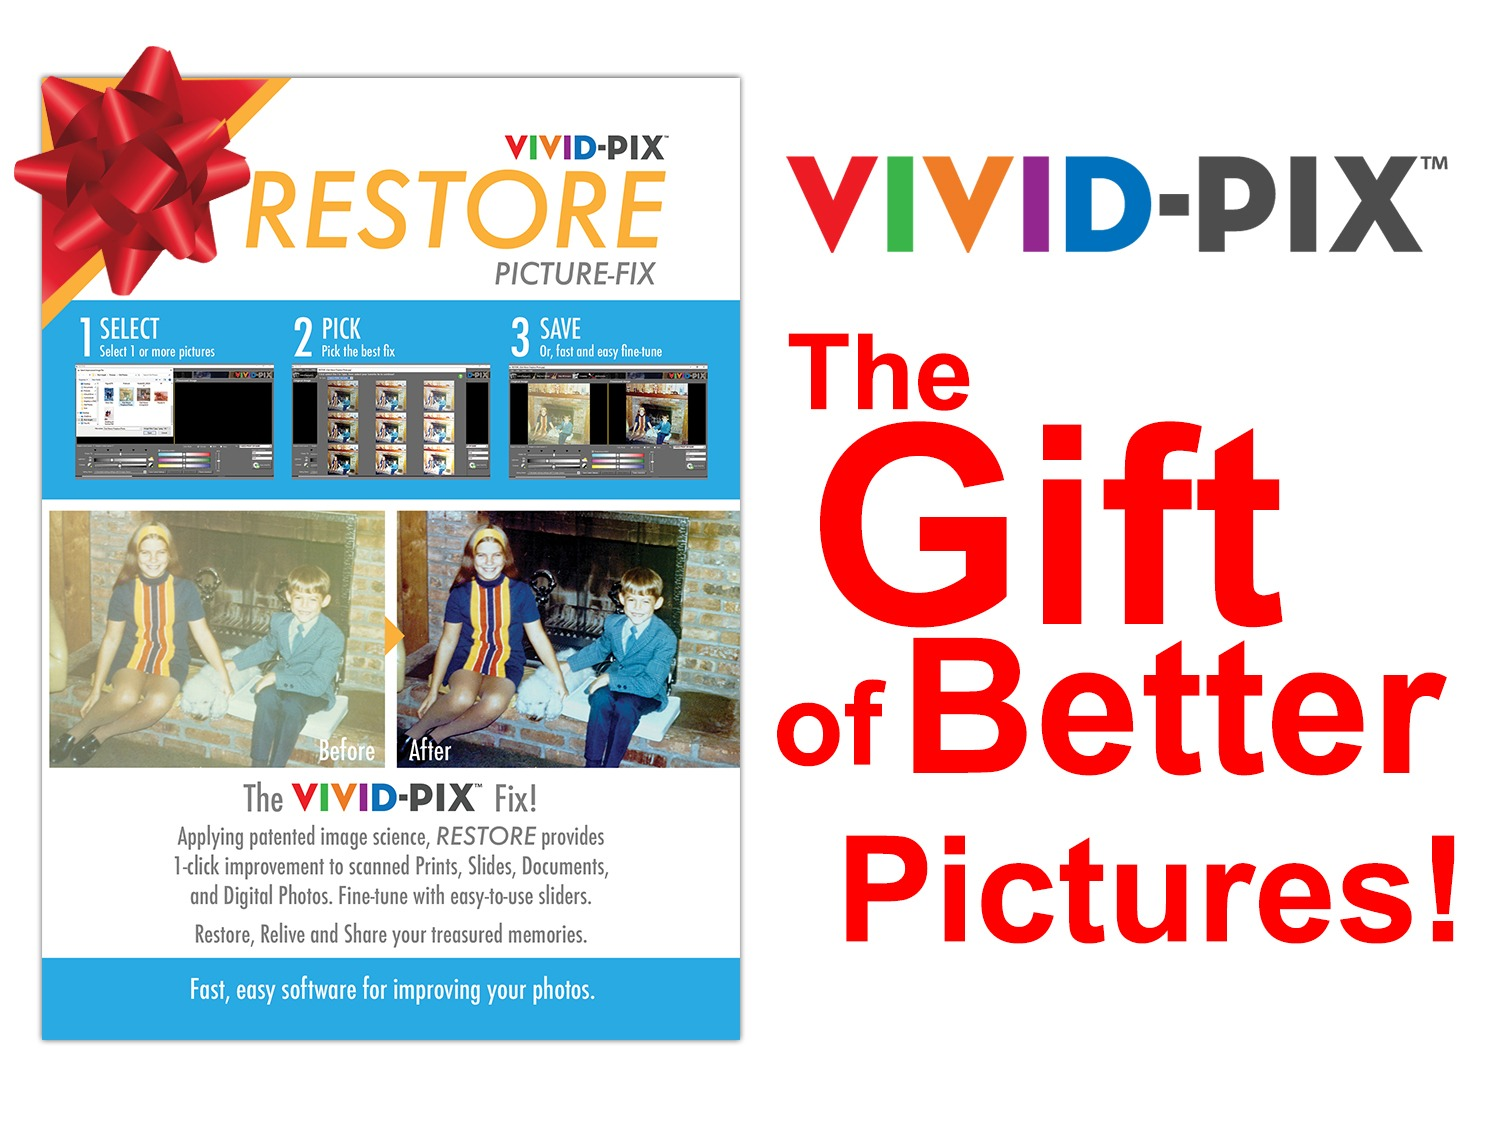 Vivid-Pix - Give the gift of better pictures